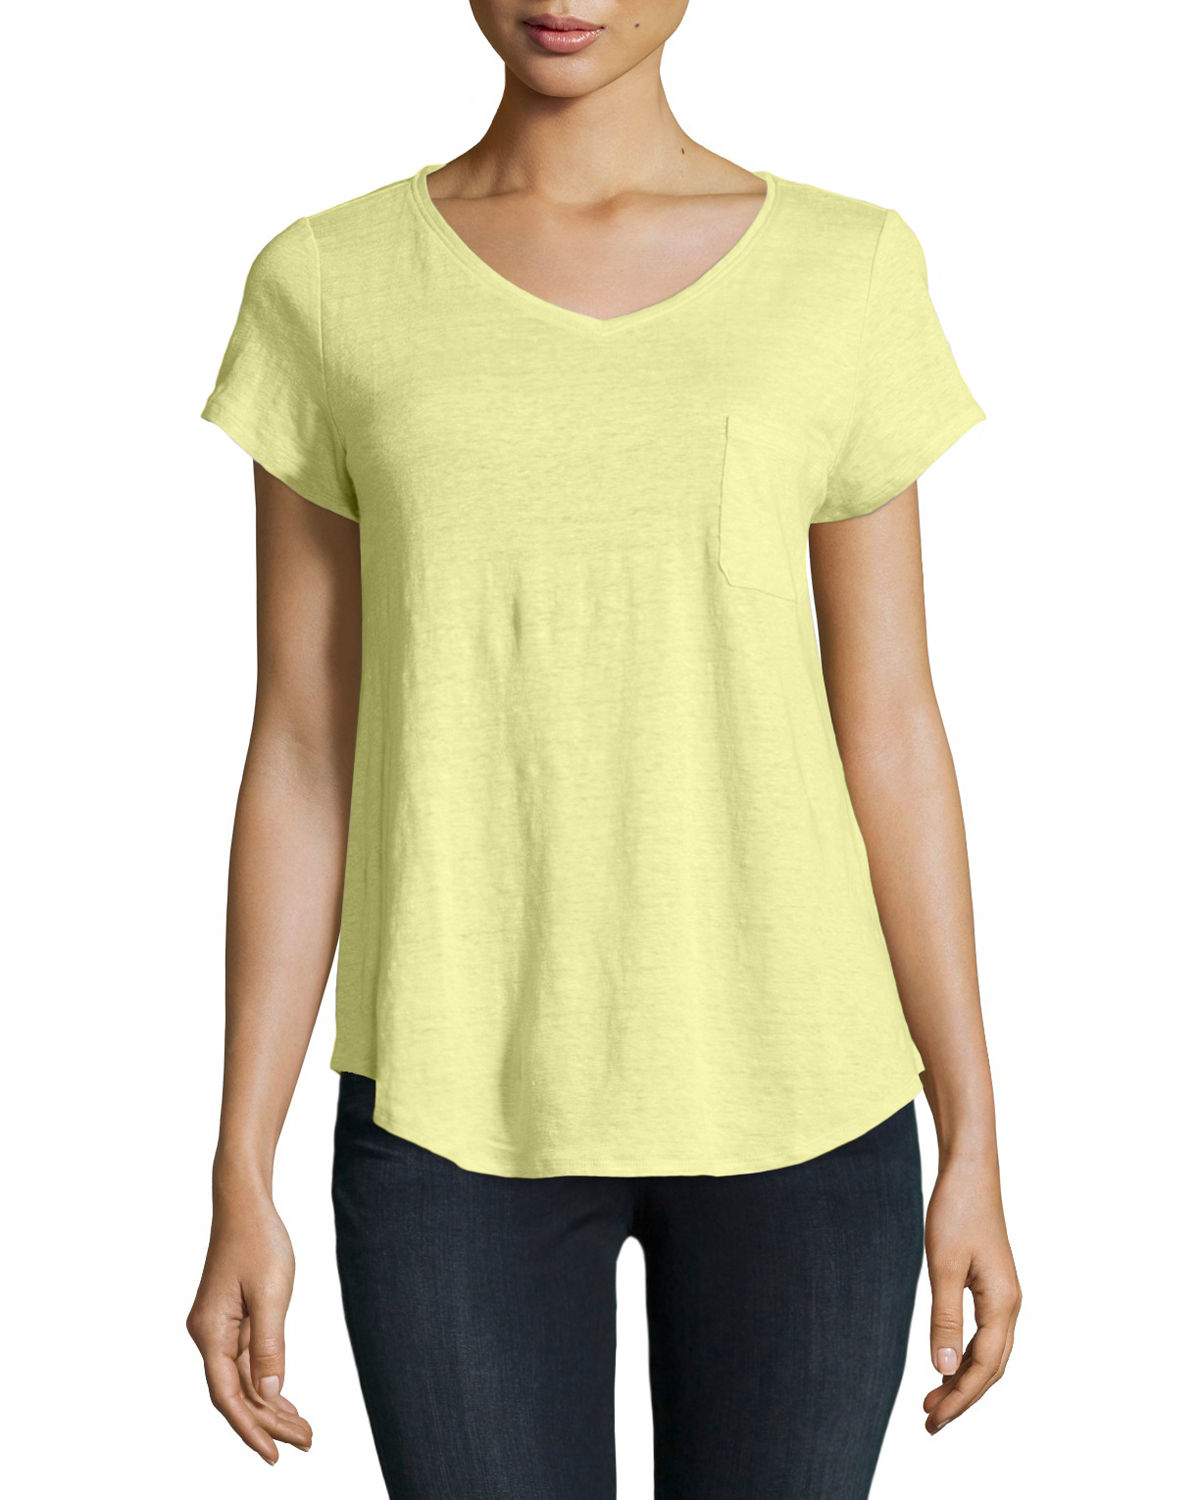 36d074cac0 Lyst - Eileen Fisher Classic Short-sleeve V-neck Tee in Yellow